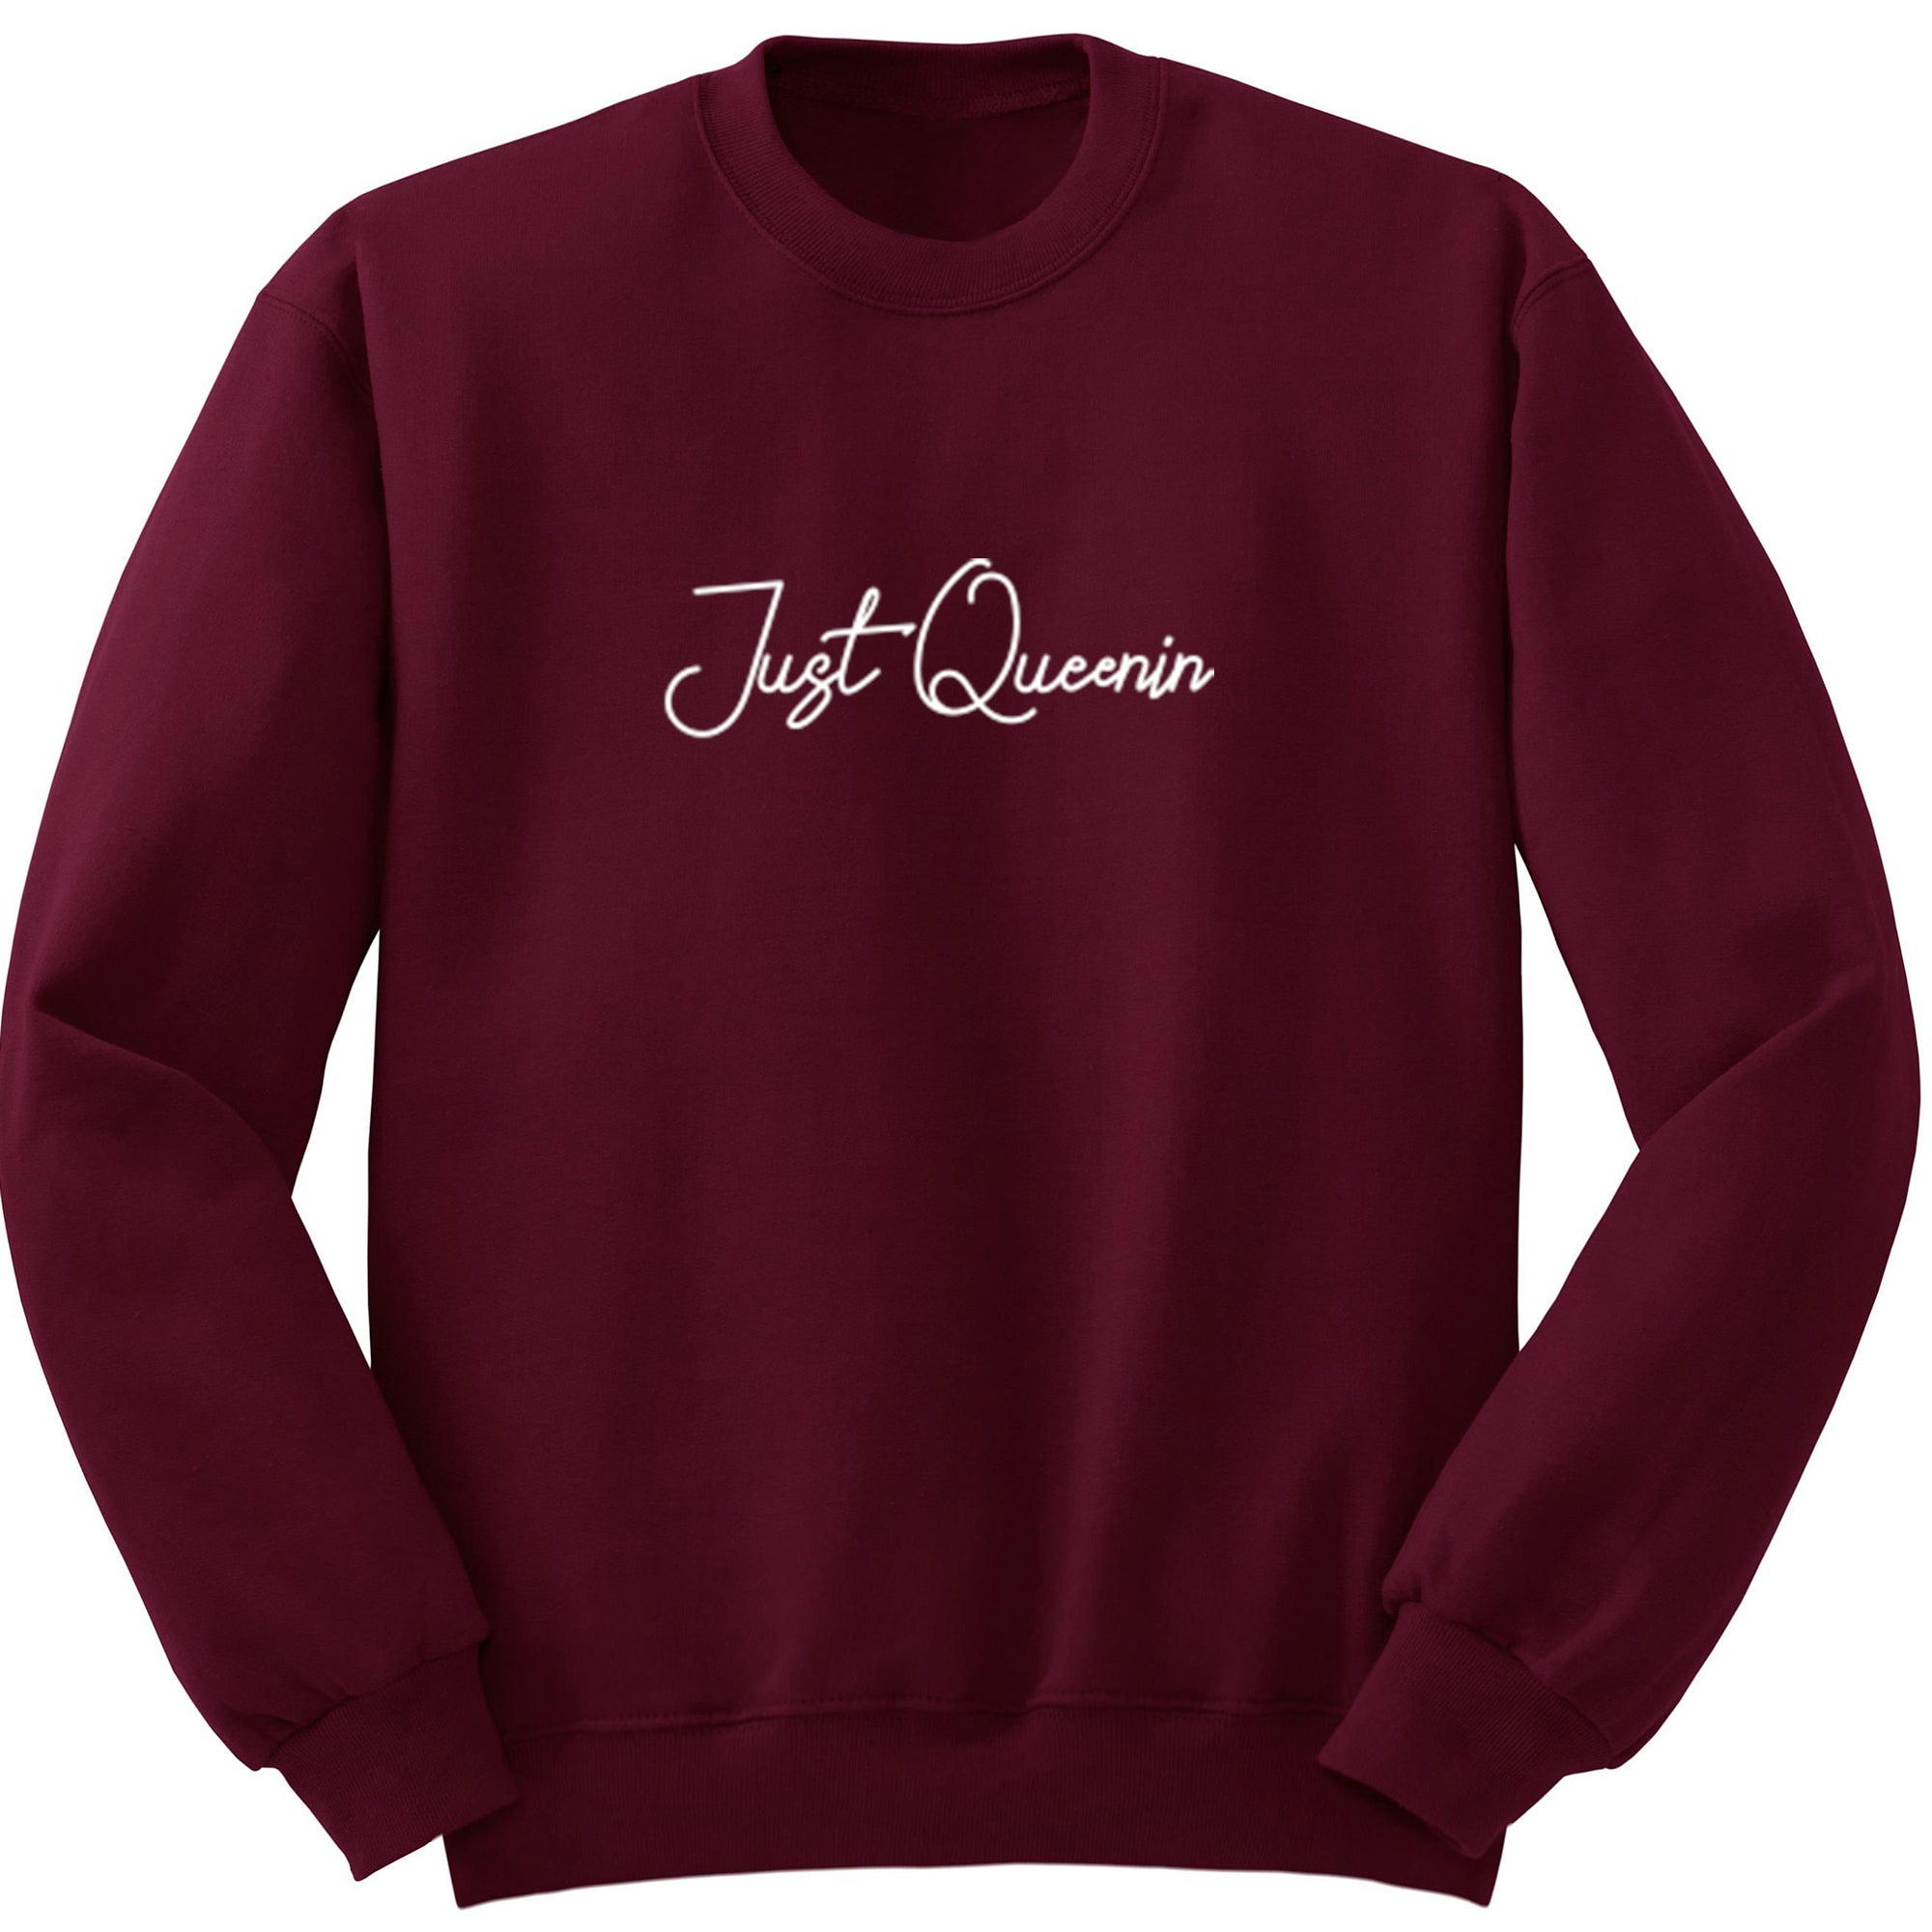 Just Queenin Unisex Jumper S1098 - Illustrated Identity Ltd.